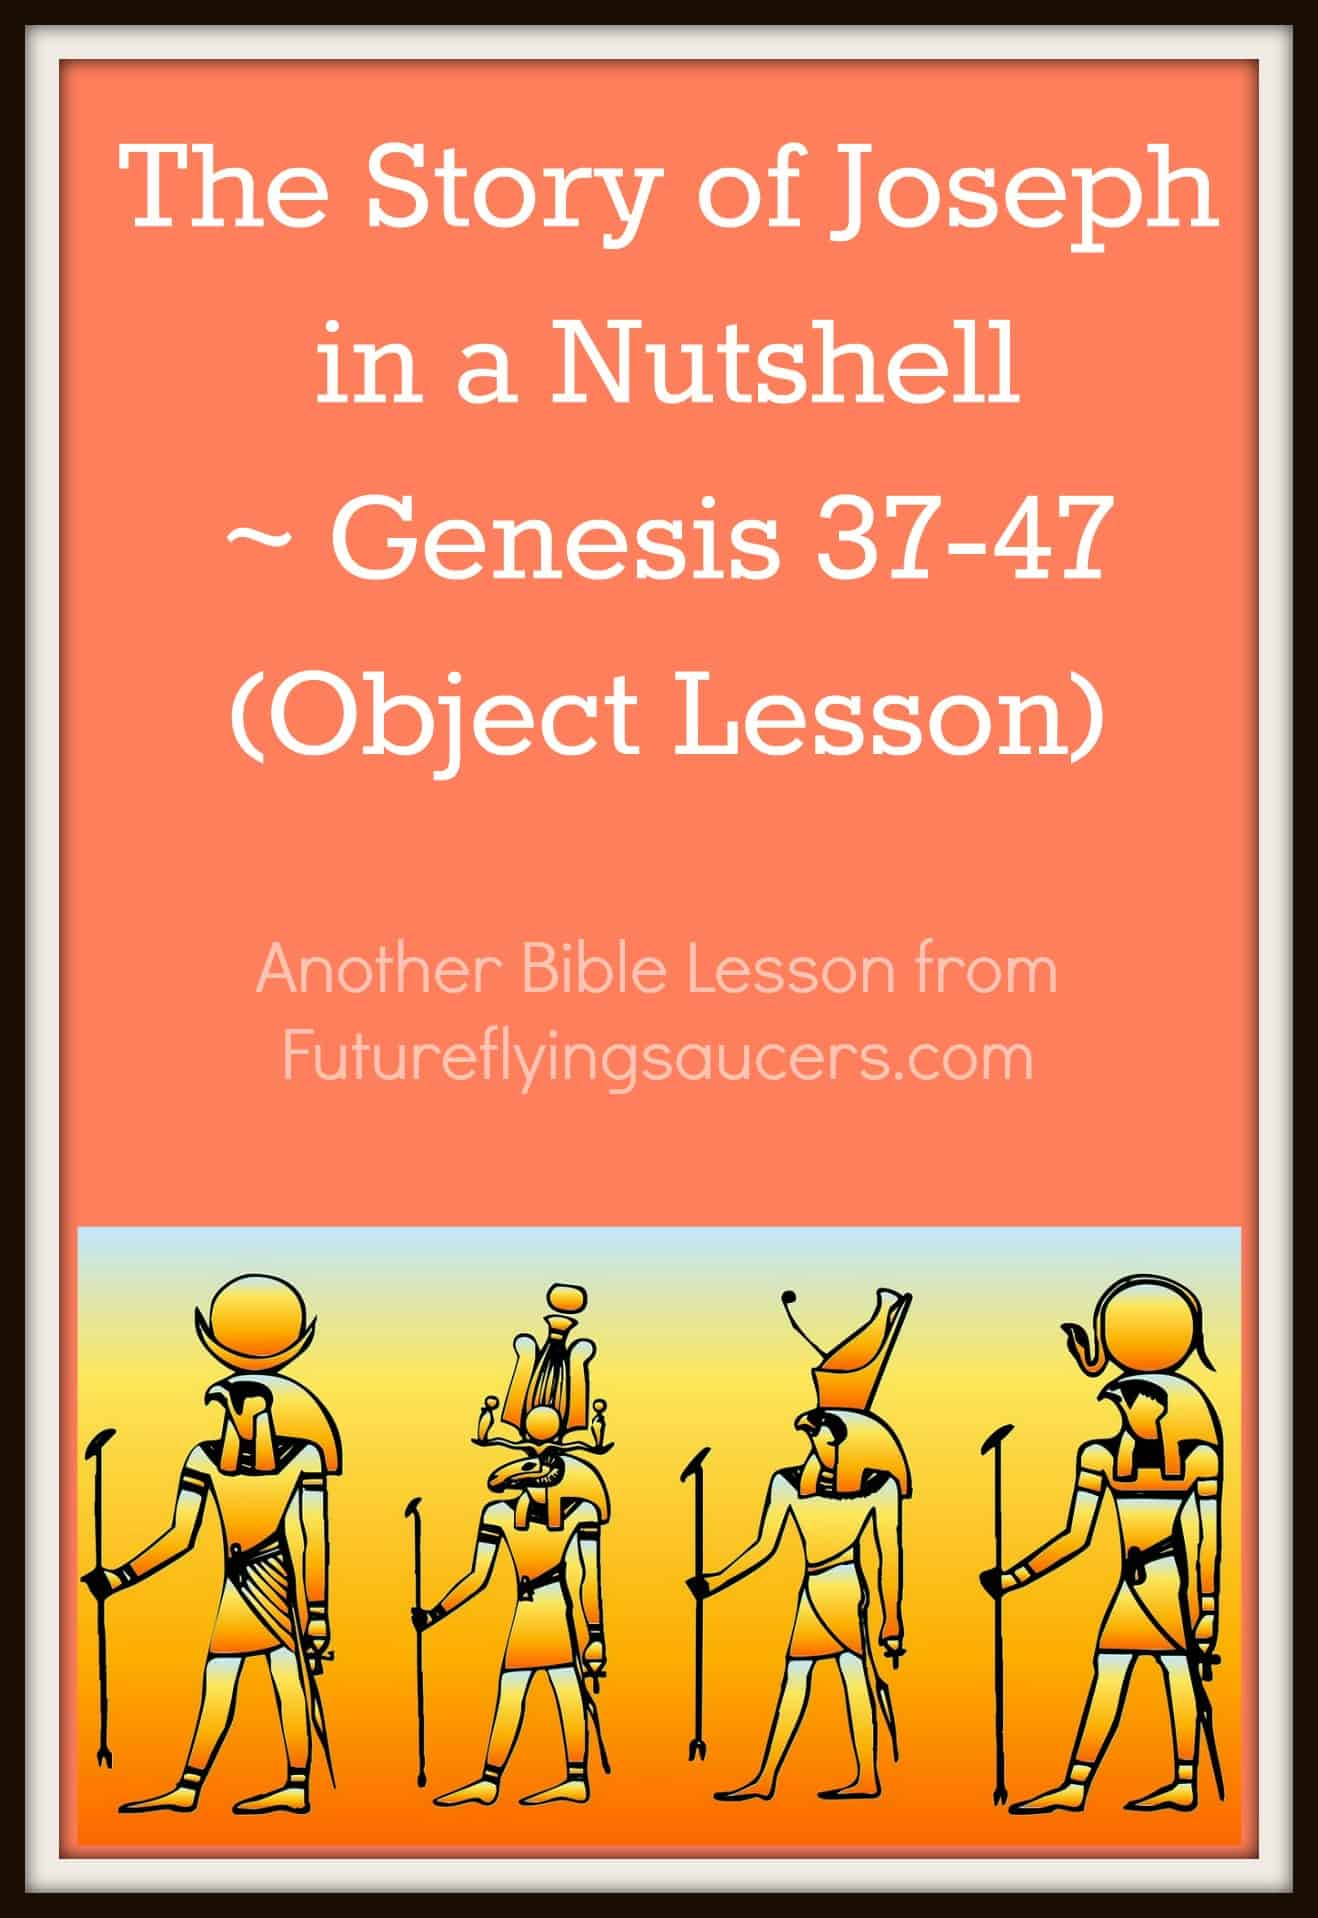 The Story Of Joseph In A Nutshell Genesis 37 47 Object Lesson Futureingucers